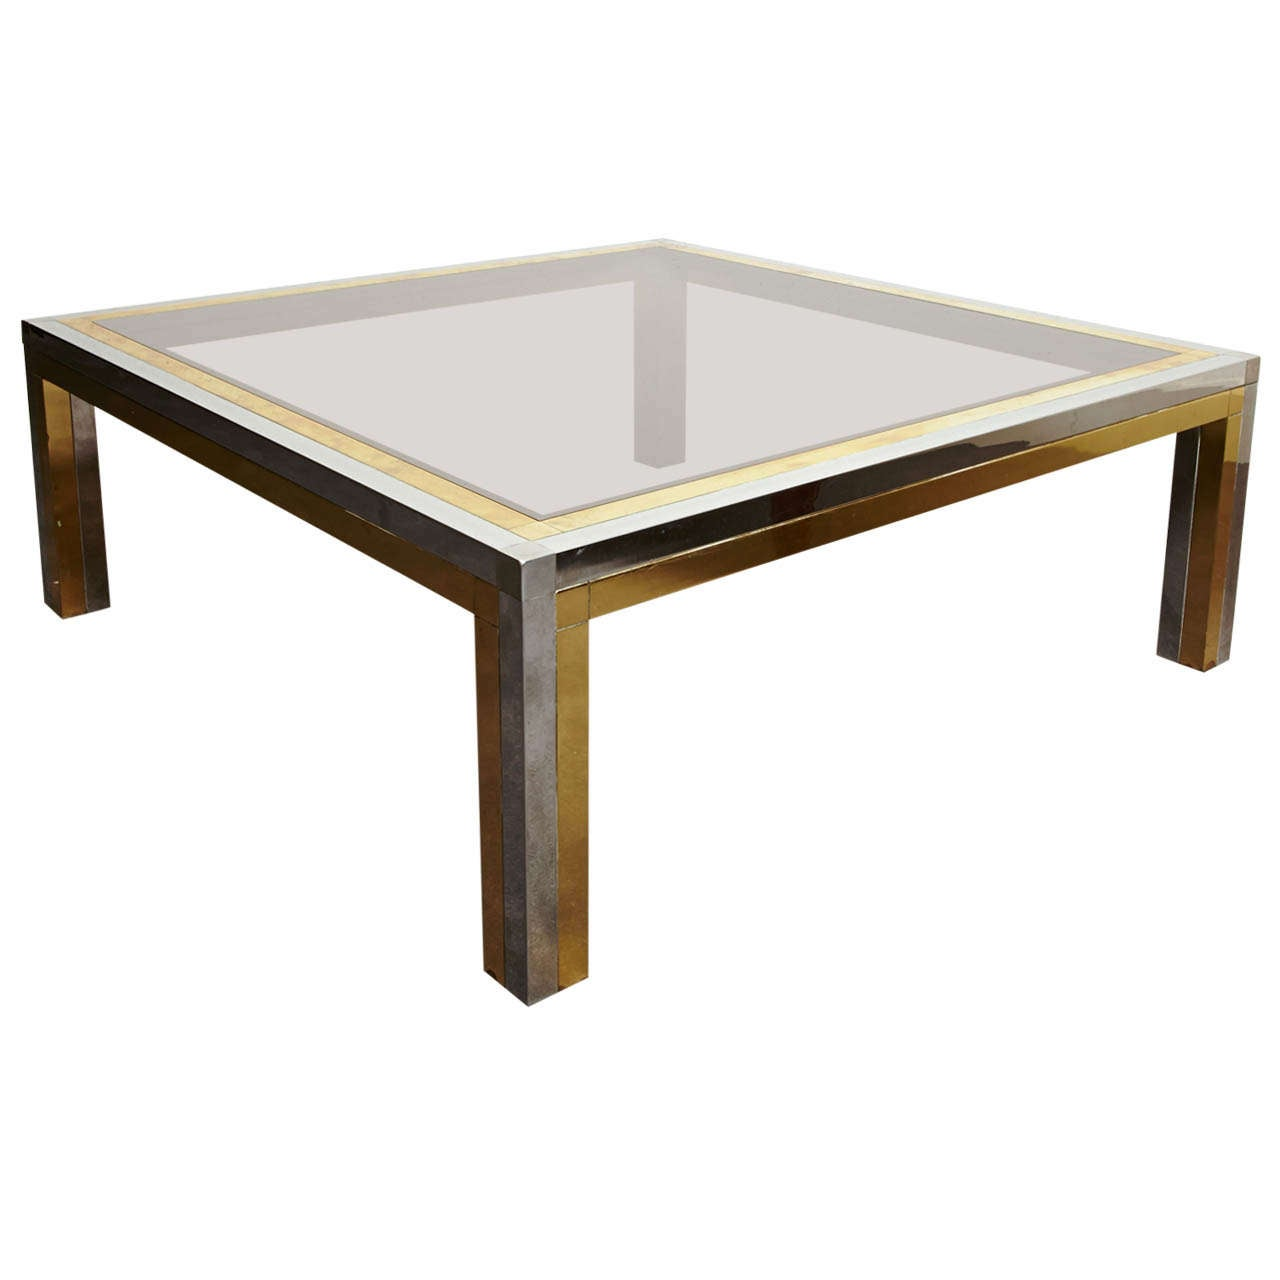 Square Steel Coffee Table Italian C 1970: Square Coffee Table, France, 1970s For Sale At 1stdibs